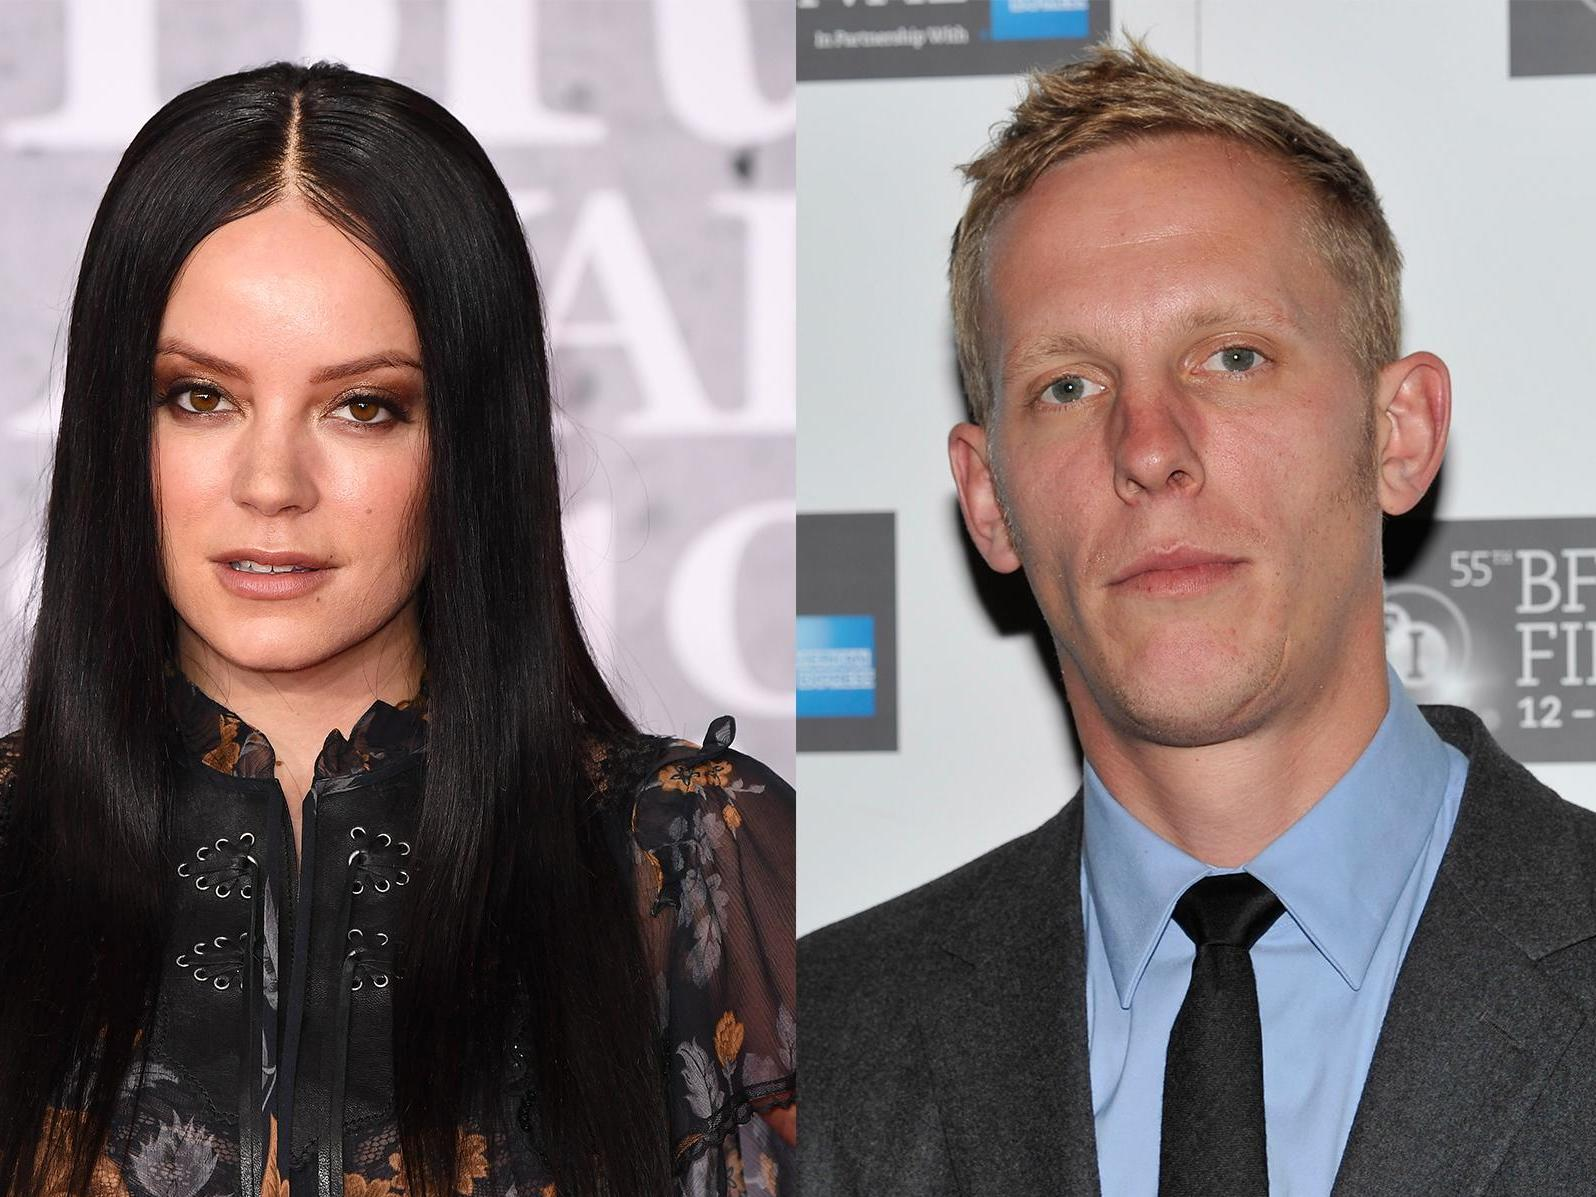 Lily Allen 'tells Laurence Fox to stick to acting' following white privilege debate